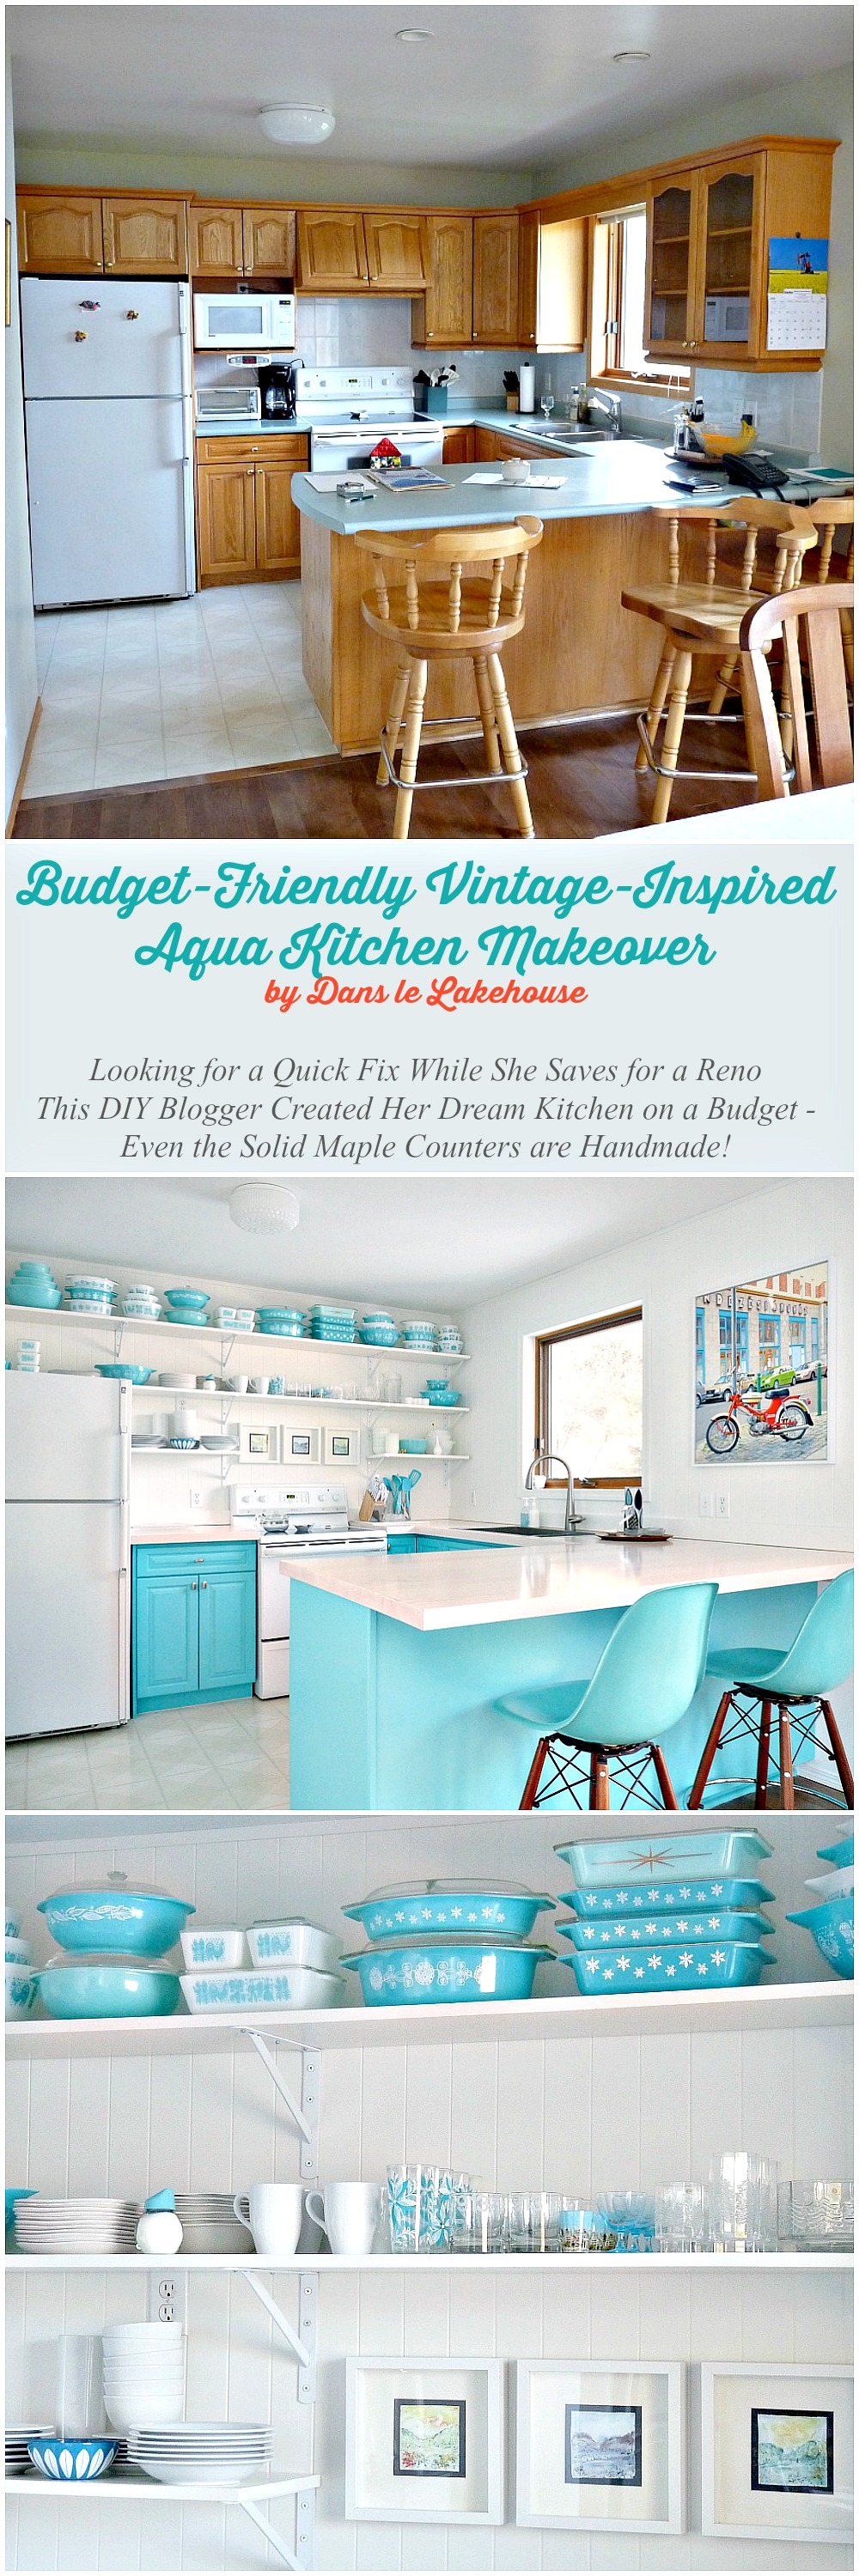 A Budget-Friendly Turquoise Kitchen Makeover | Dans le Lakehouse on turquoise kitchen color ideas, turquoise retro furniture, red retro kitchen ideas, turquoise home decor ideas,